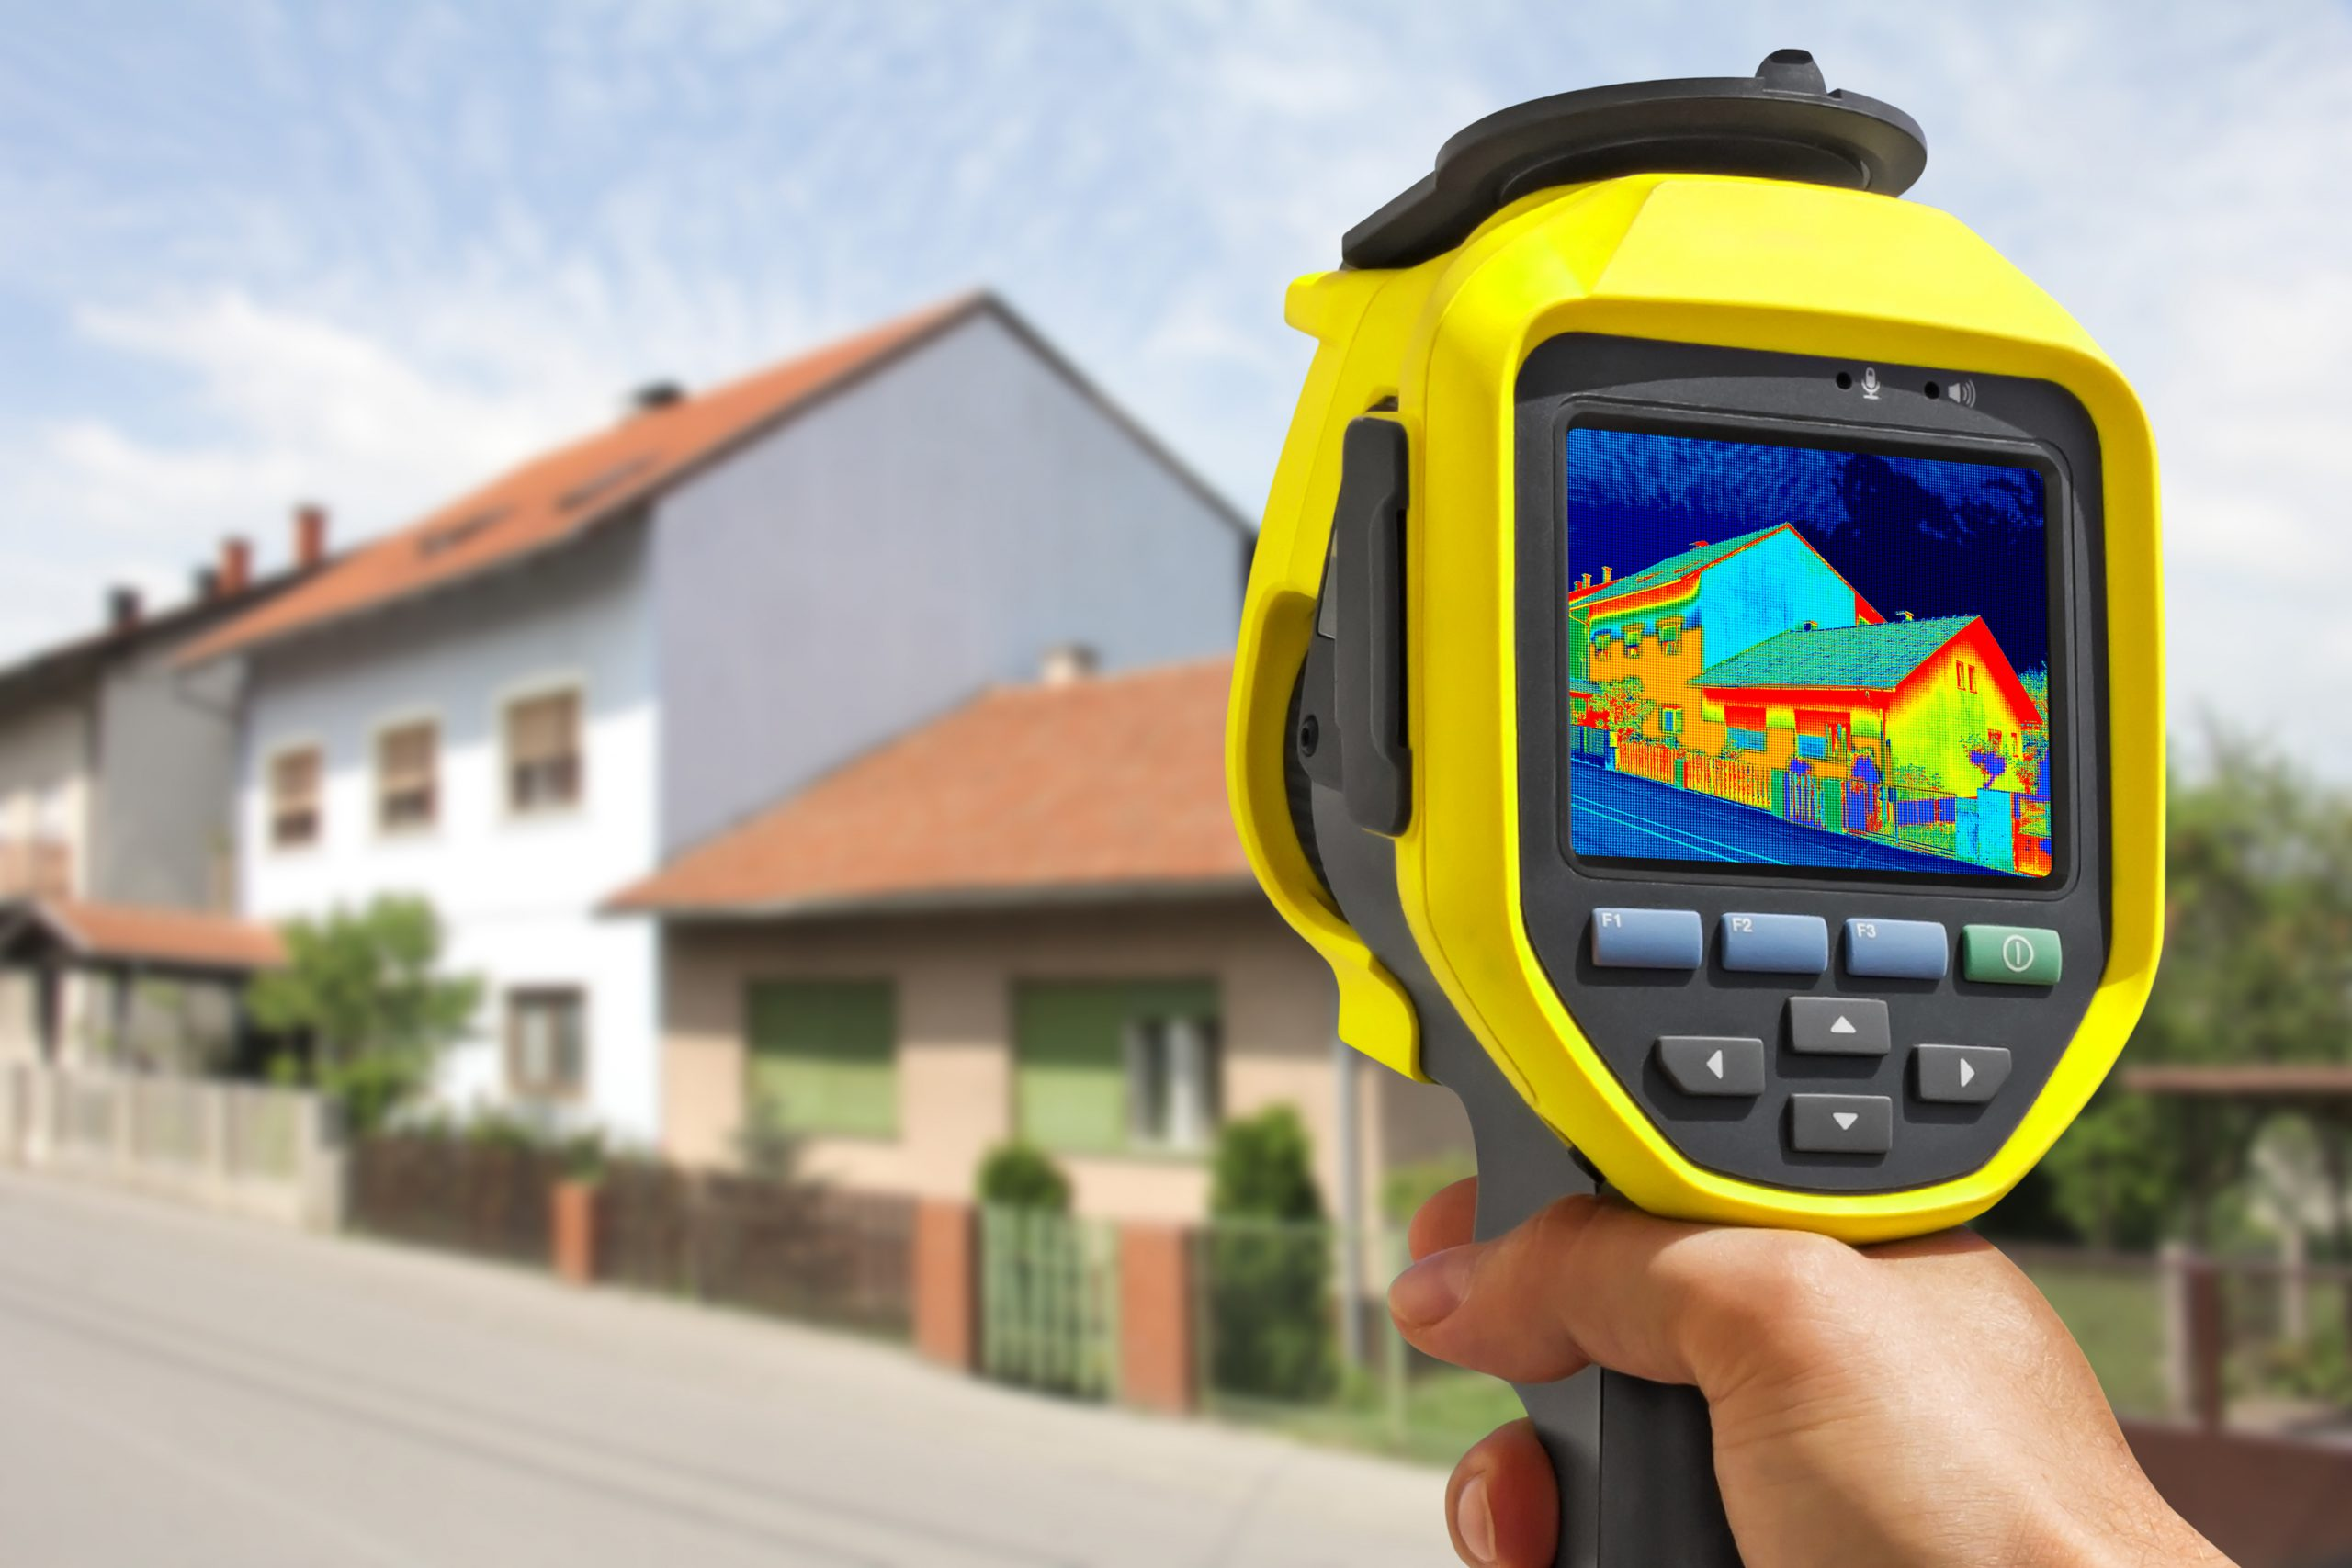 photo of a Man Recording Heat Loss at the House With Infrared Thermal Camera